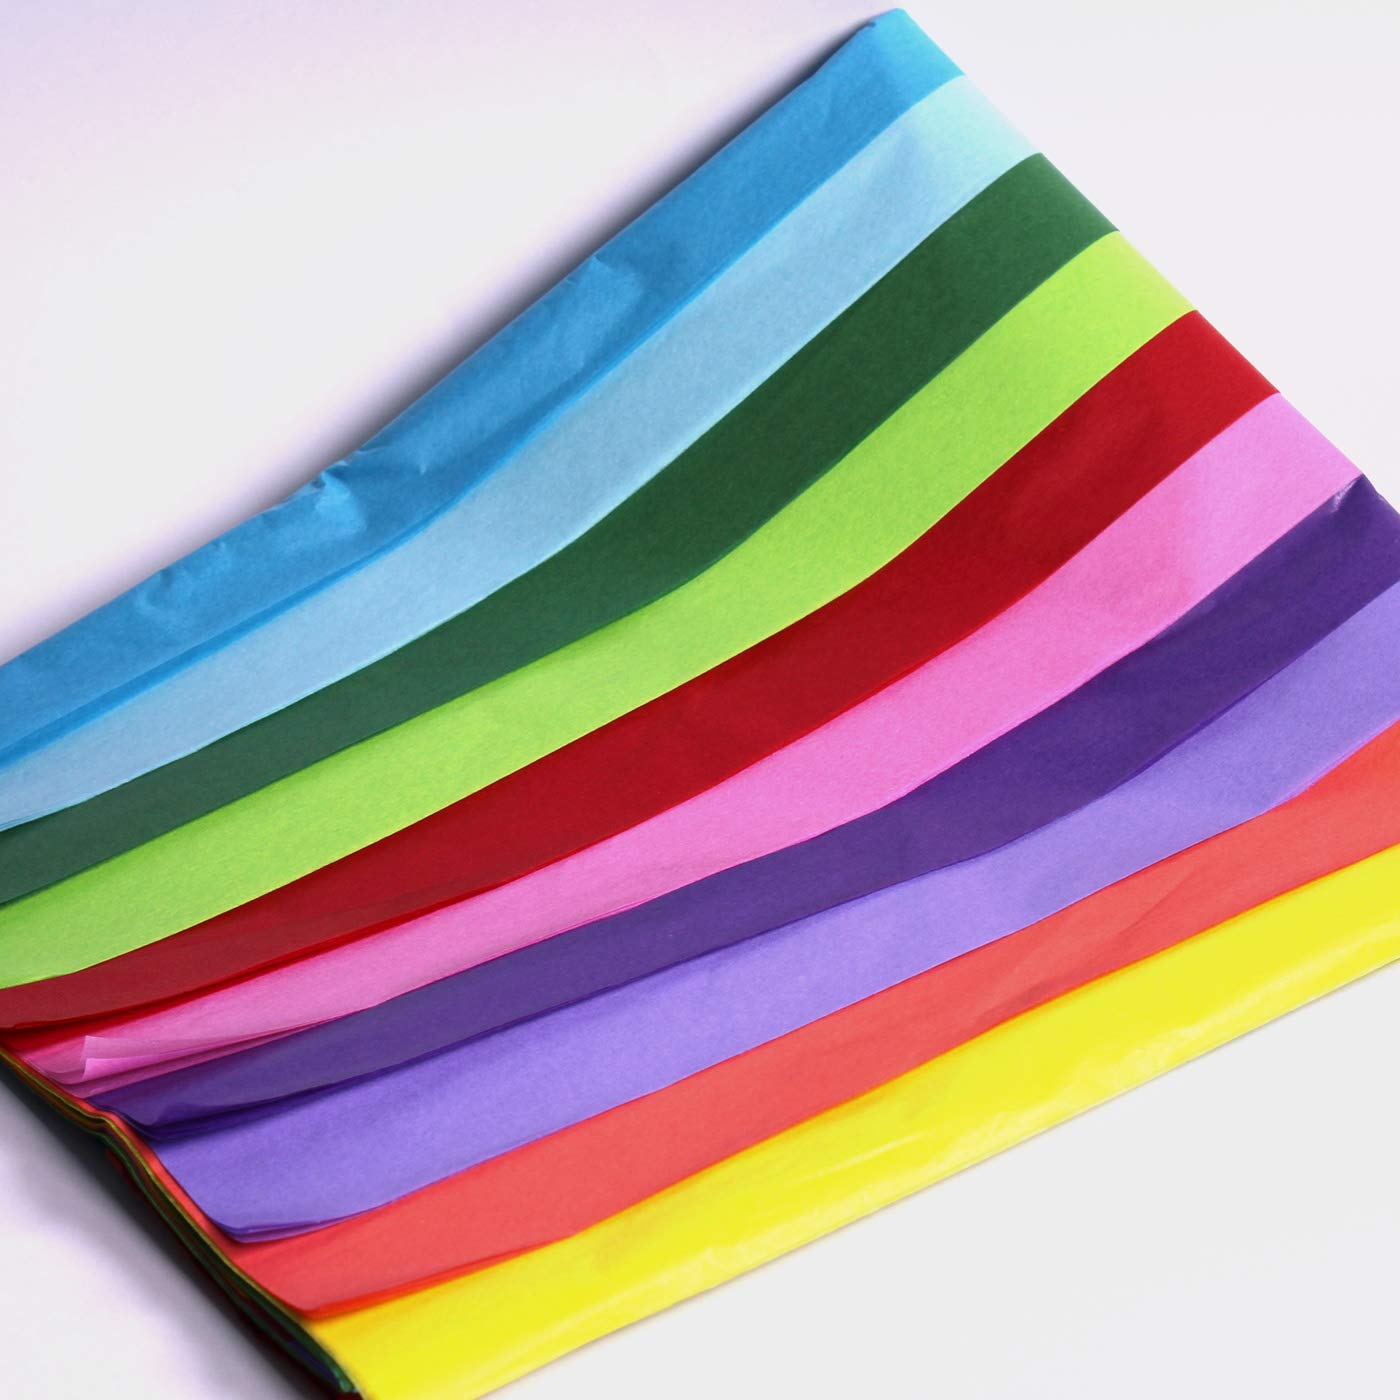 6 X Multi Coloured Tissue Paper//Gift Wrap//Wrapping Paper Sheets Pack of 50 20 x 30